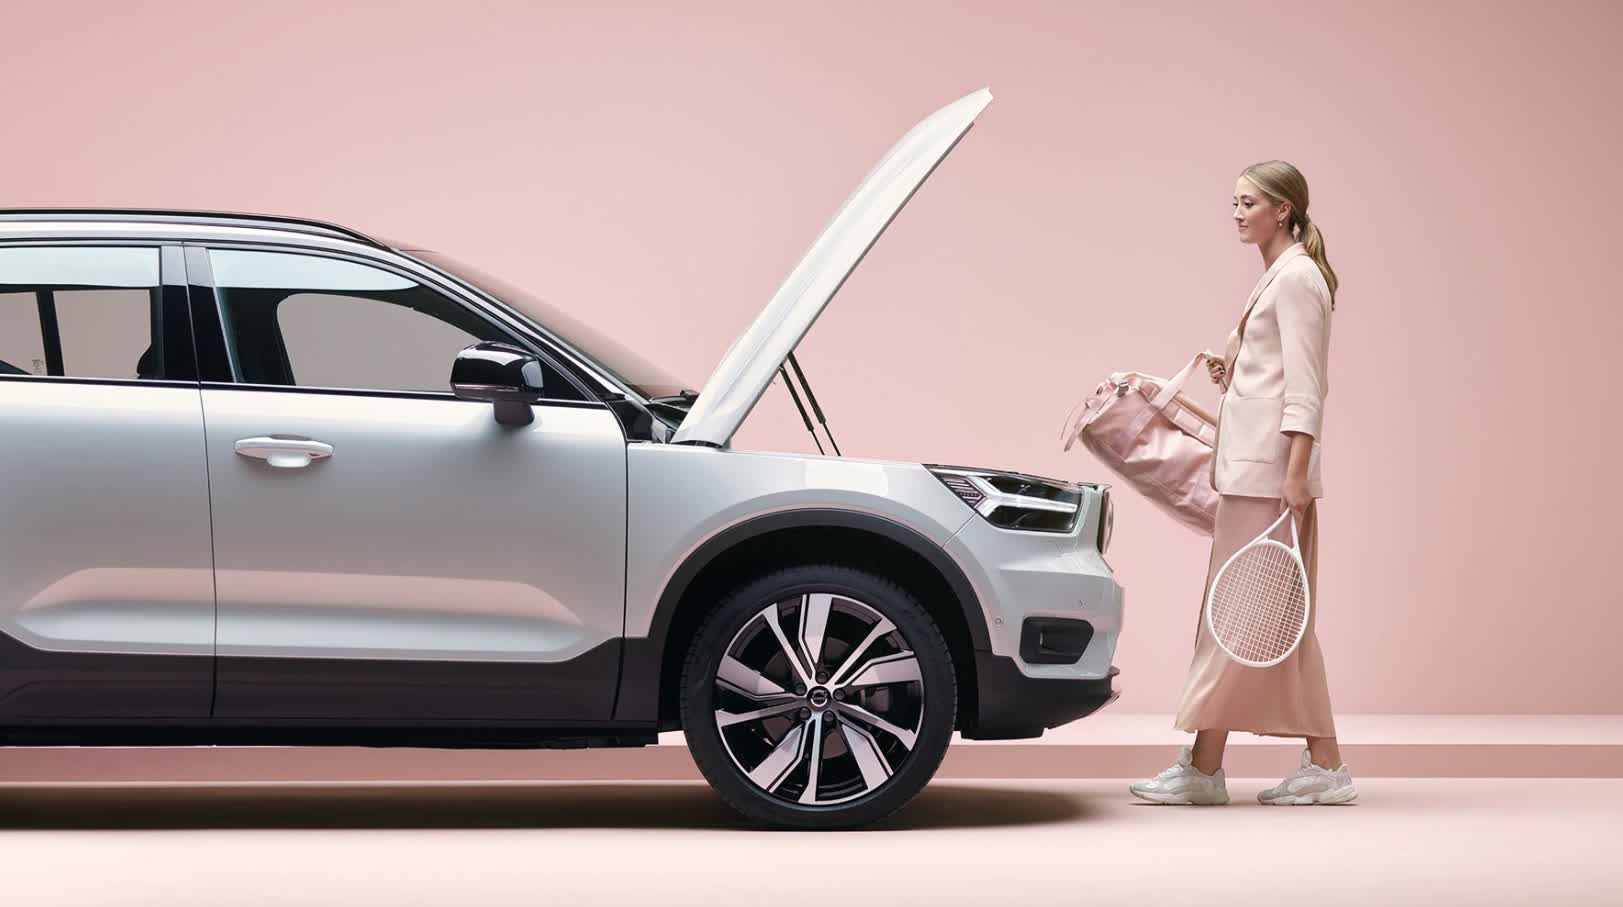 Volvo will only sell all-electric vehicles by 2030, is moving all EV sales to online-only model